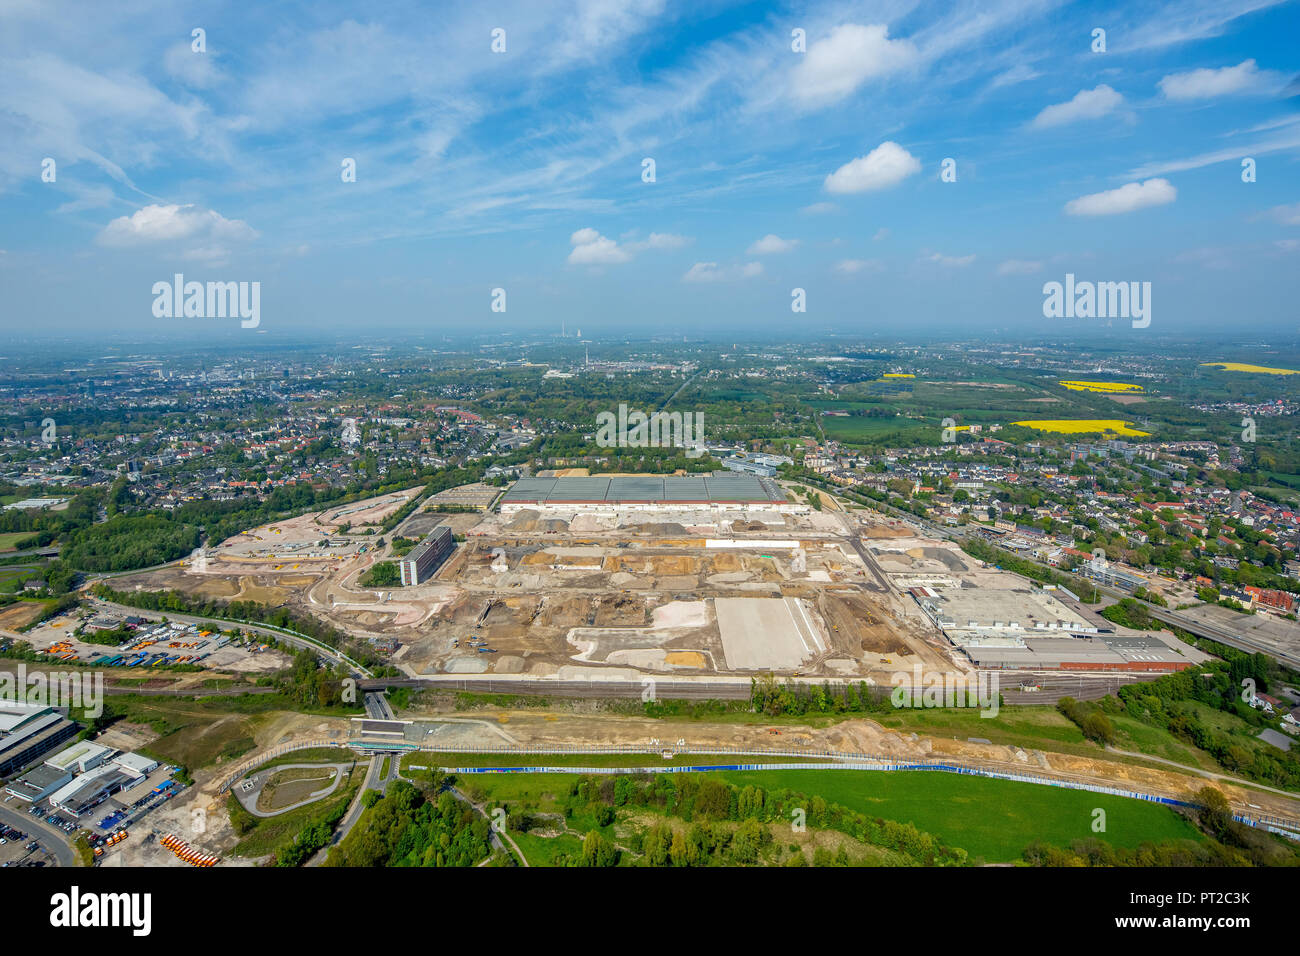 Fallow OPEL plant 1, demolition of the southern factory halls, OPEL administration building, Bochum, Ruhr area, North Rhine-Westphalia, Germany, Europe, - Stock Image